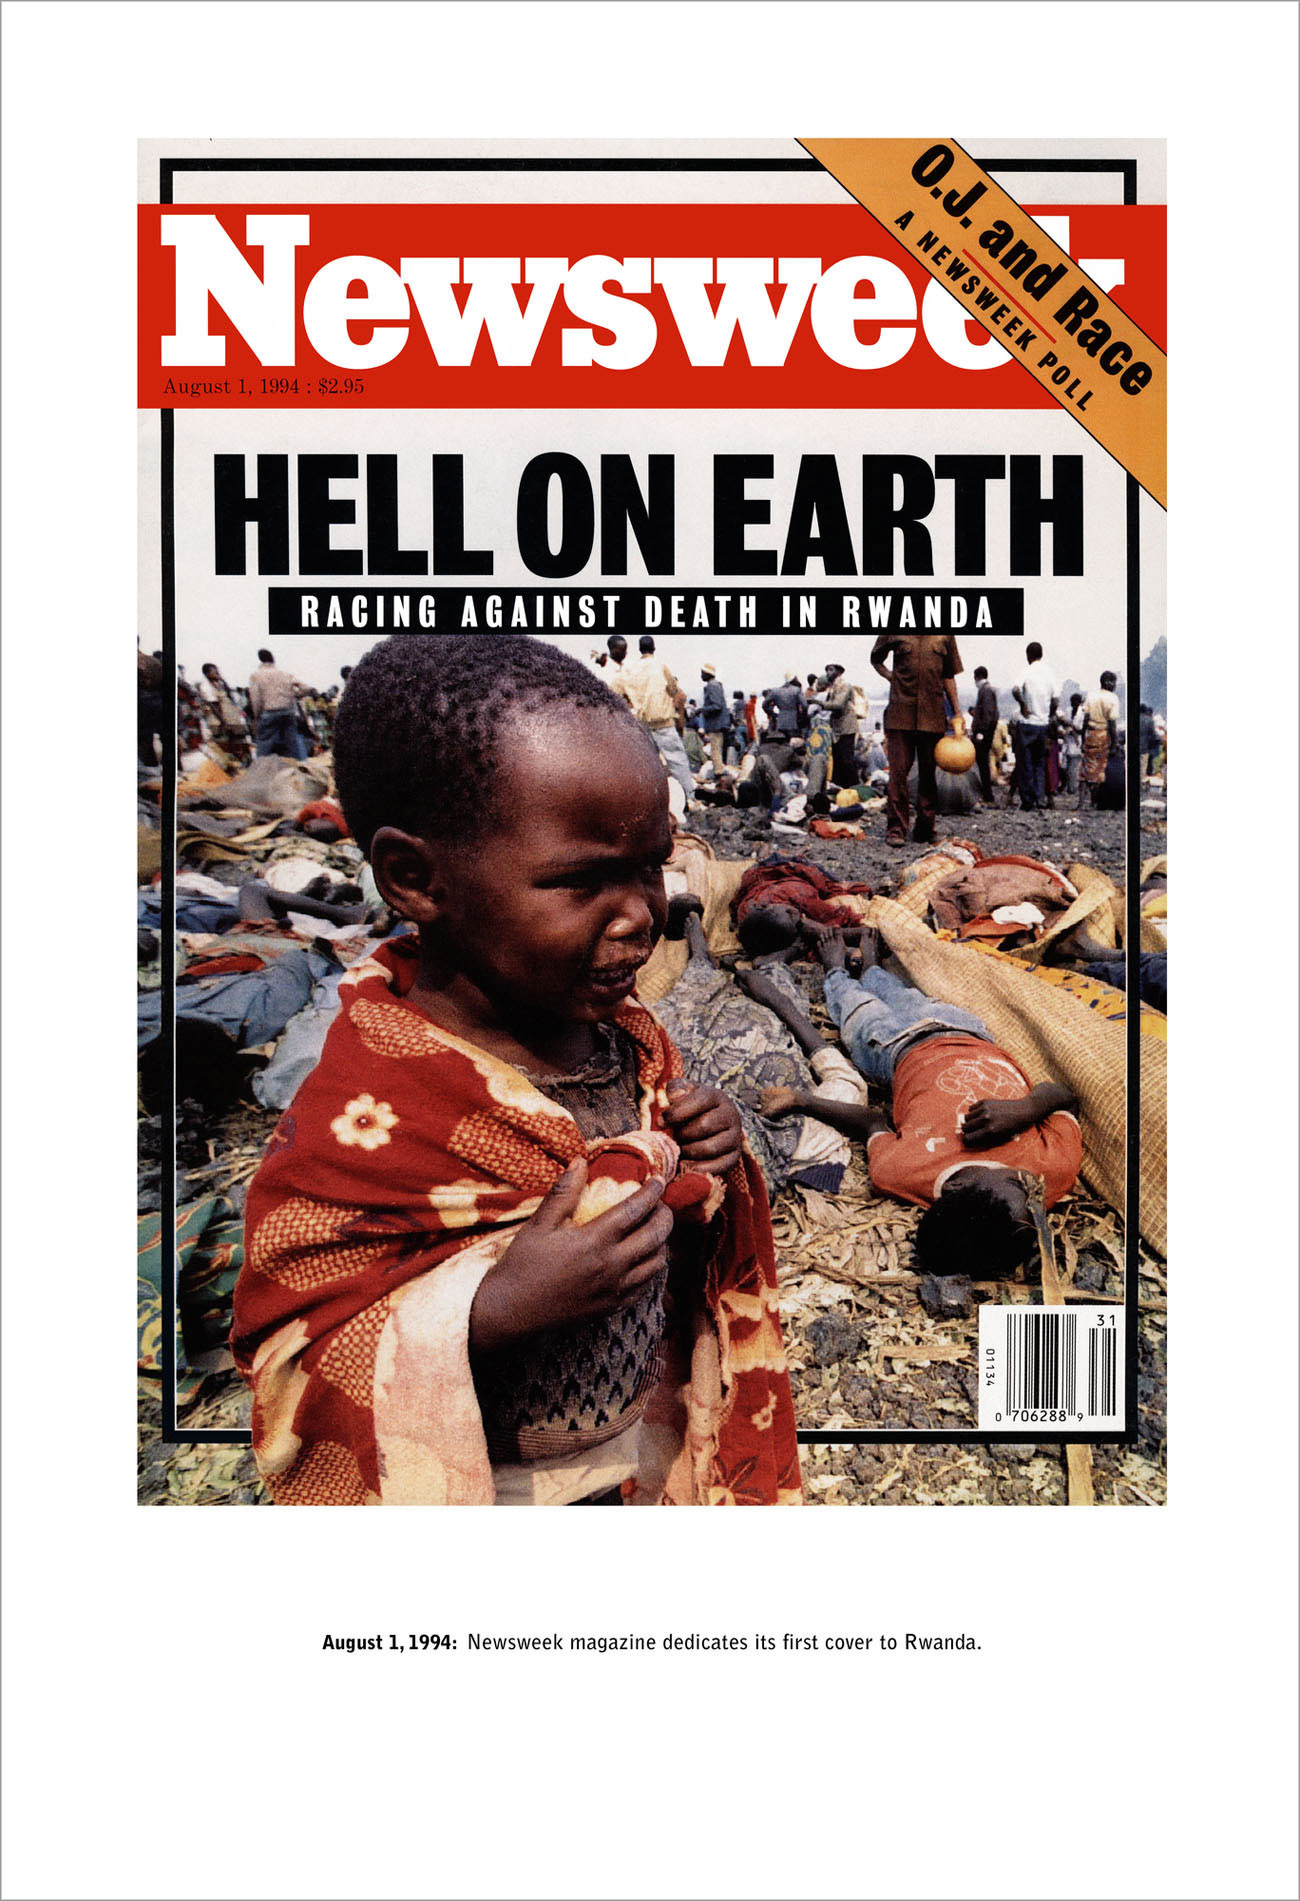 Newsweek cover about the Rwandan genocide showing a crying toddler with date and comment by artist Alfredo Jaar